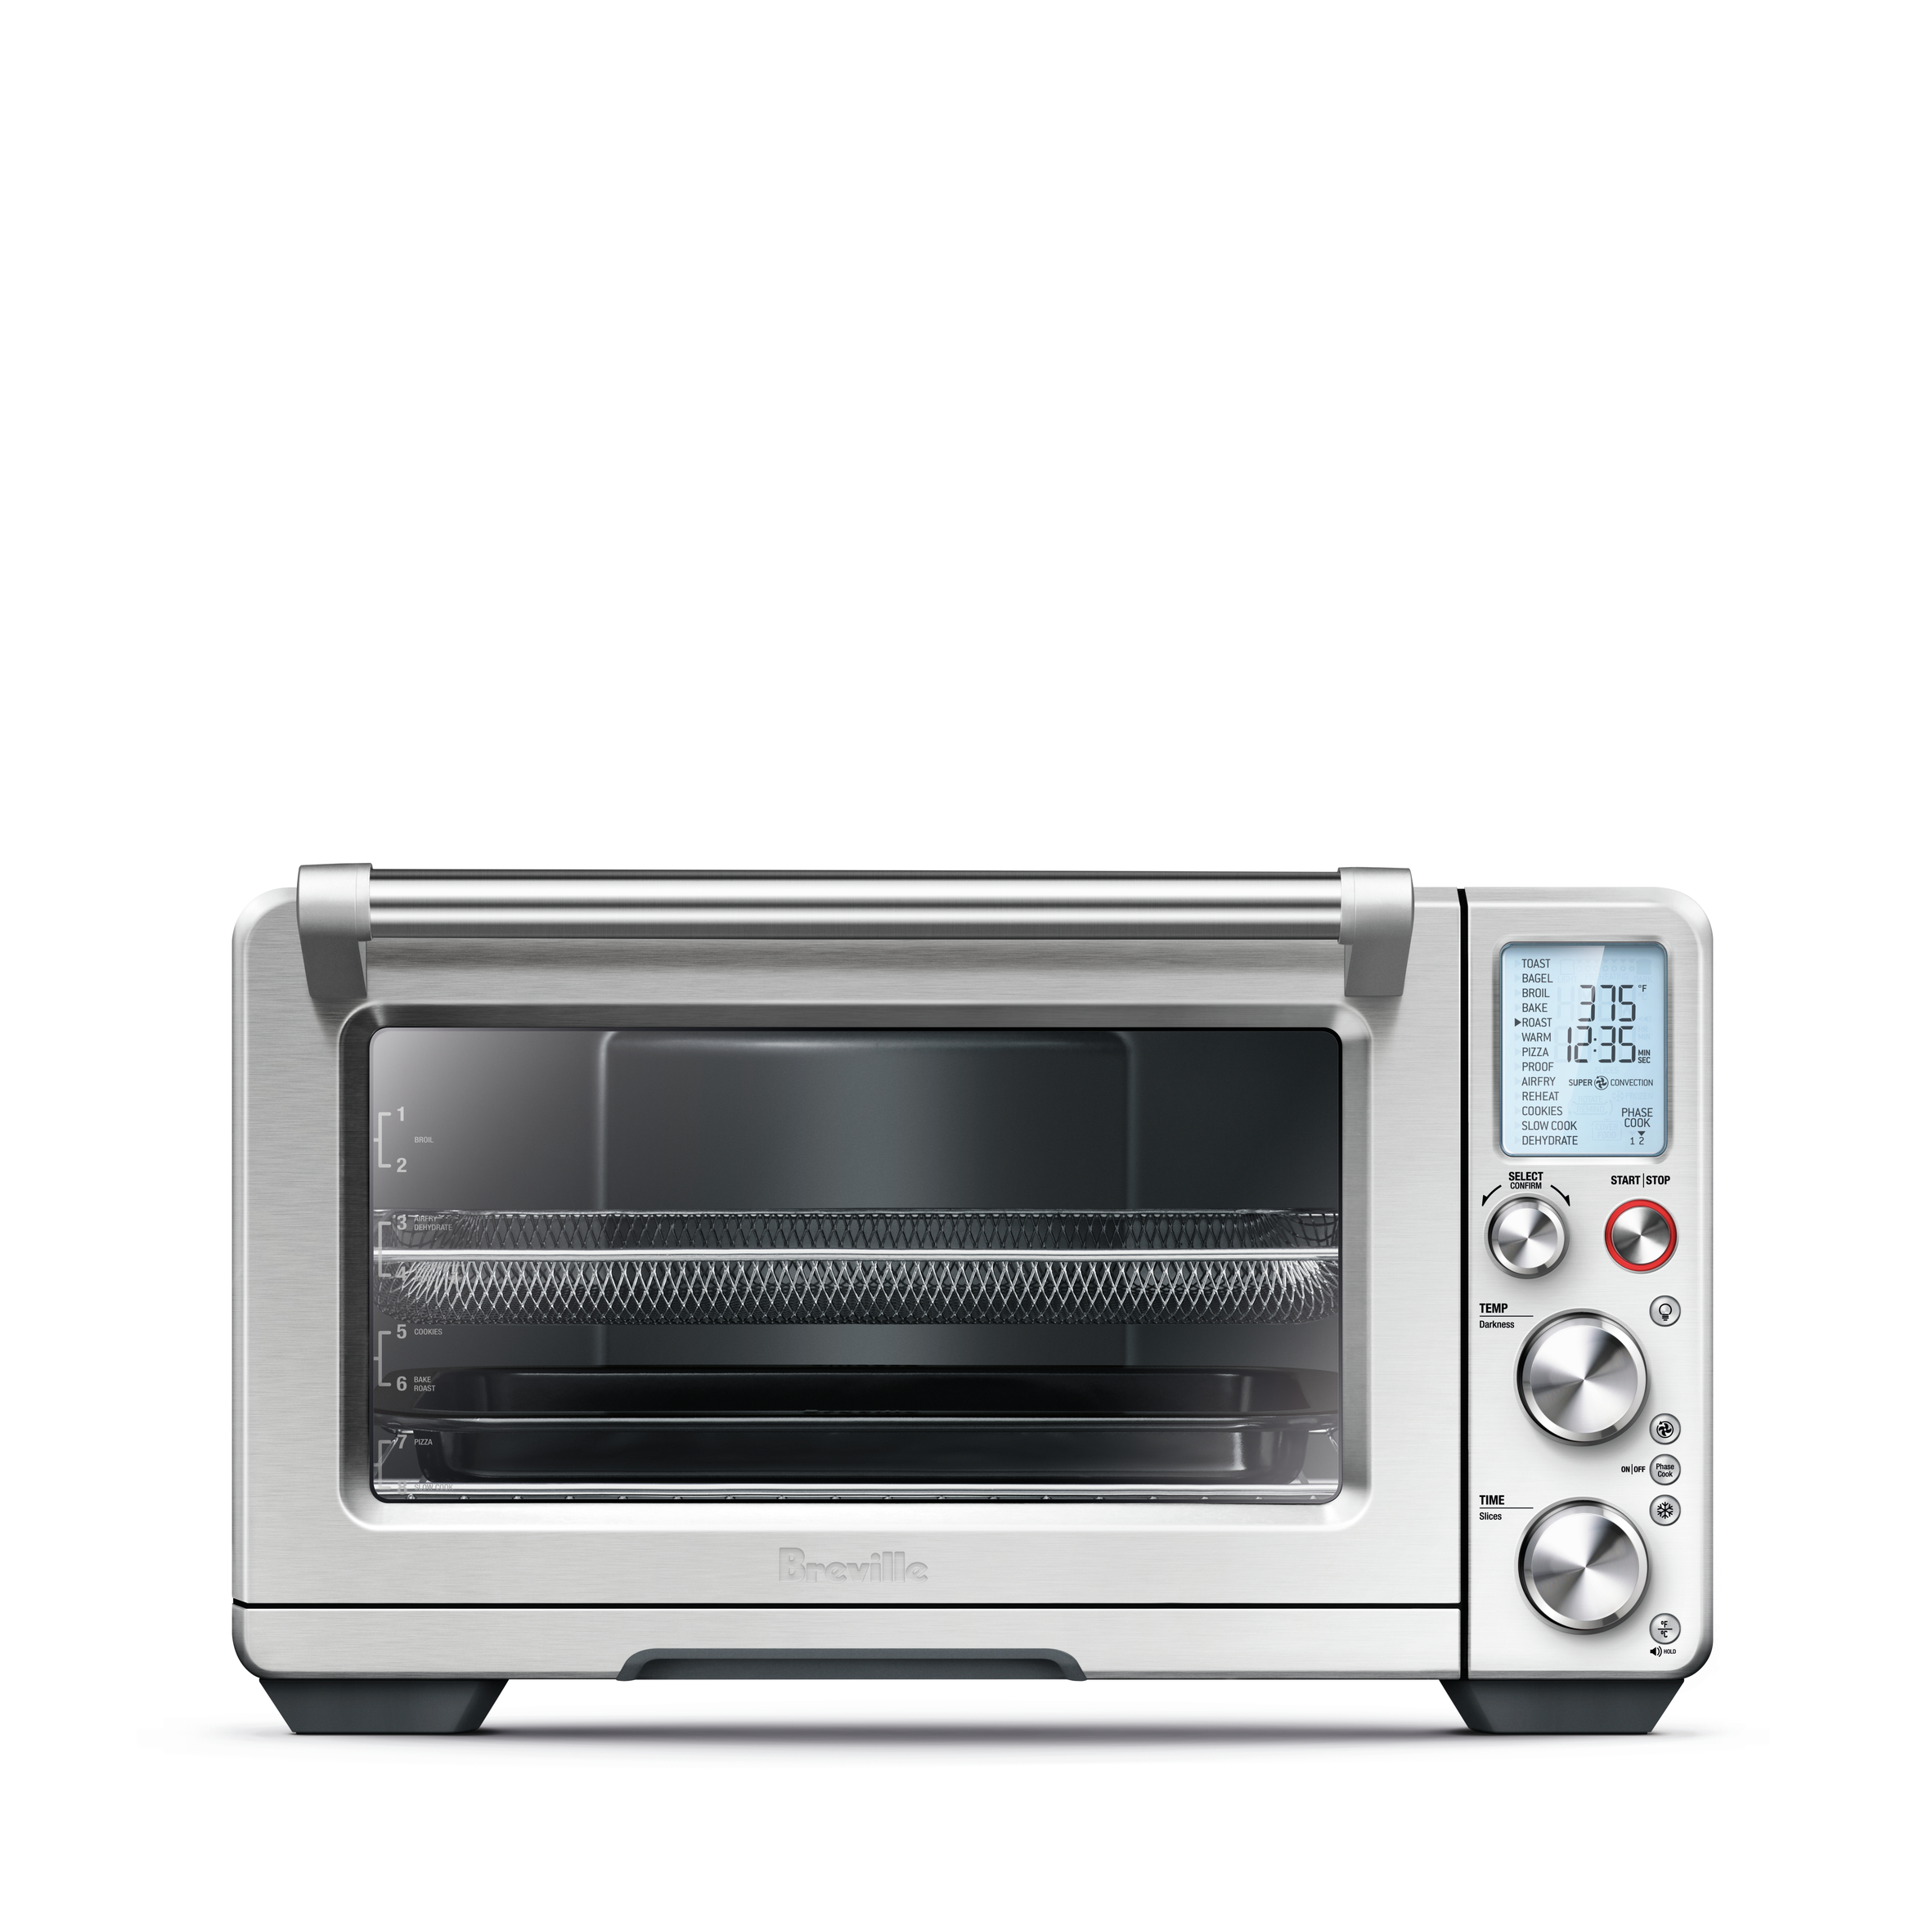 smart slice four breville toast bit the stainless steel toaster more